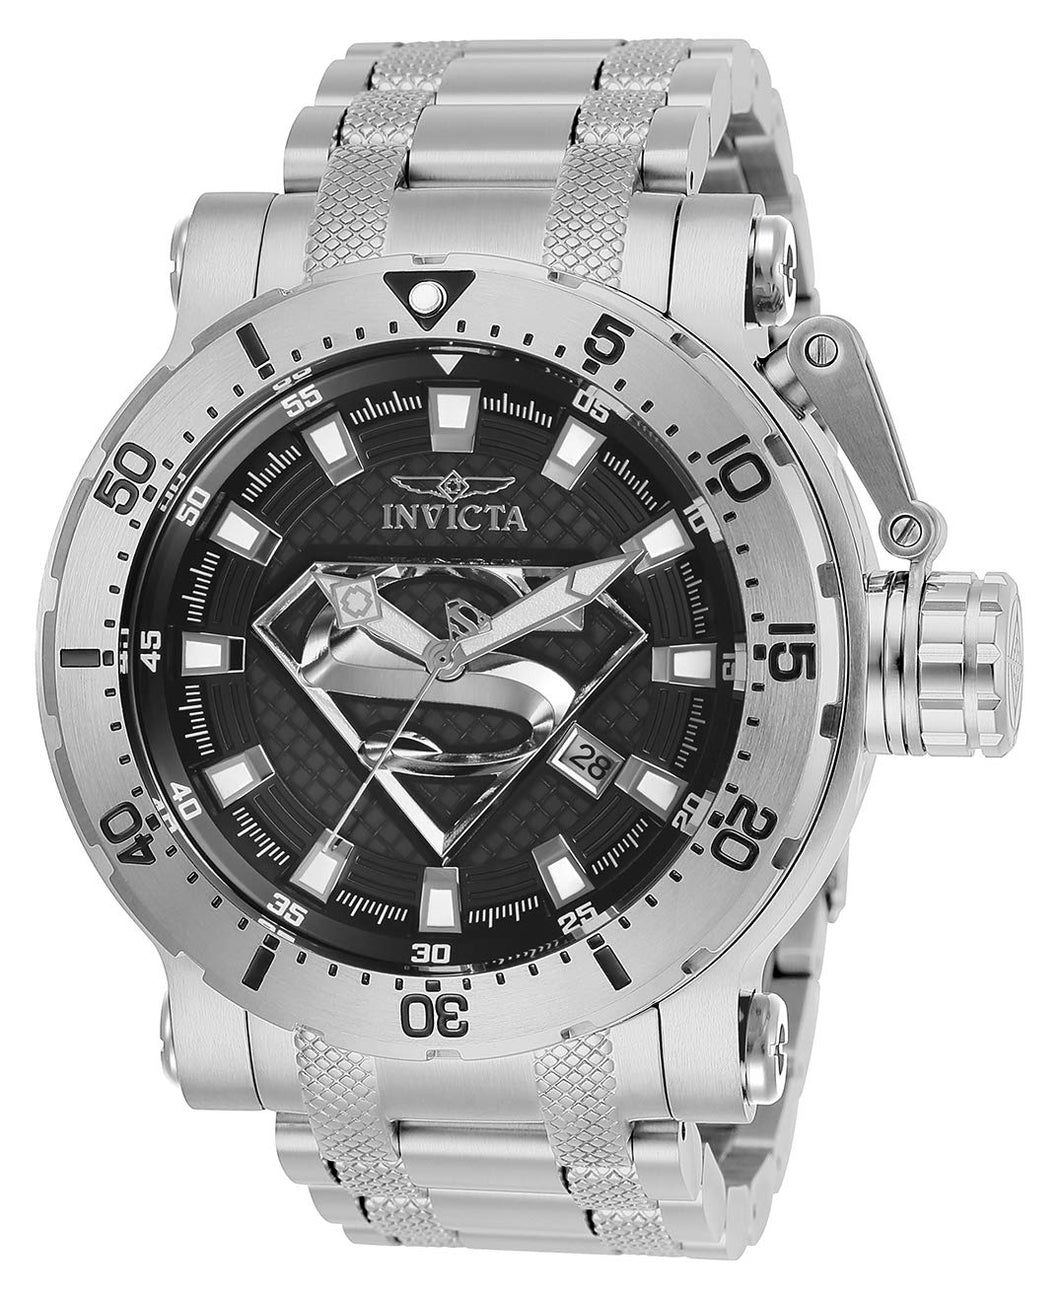 Invicta Men's DC Comics Automatic-self-Wind Watch with Stainless-Steel Strap, Silver, 26 (Model: 26824)